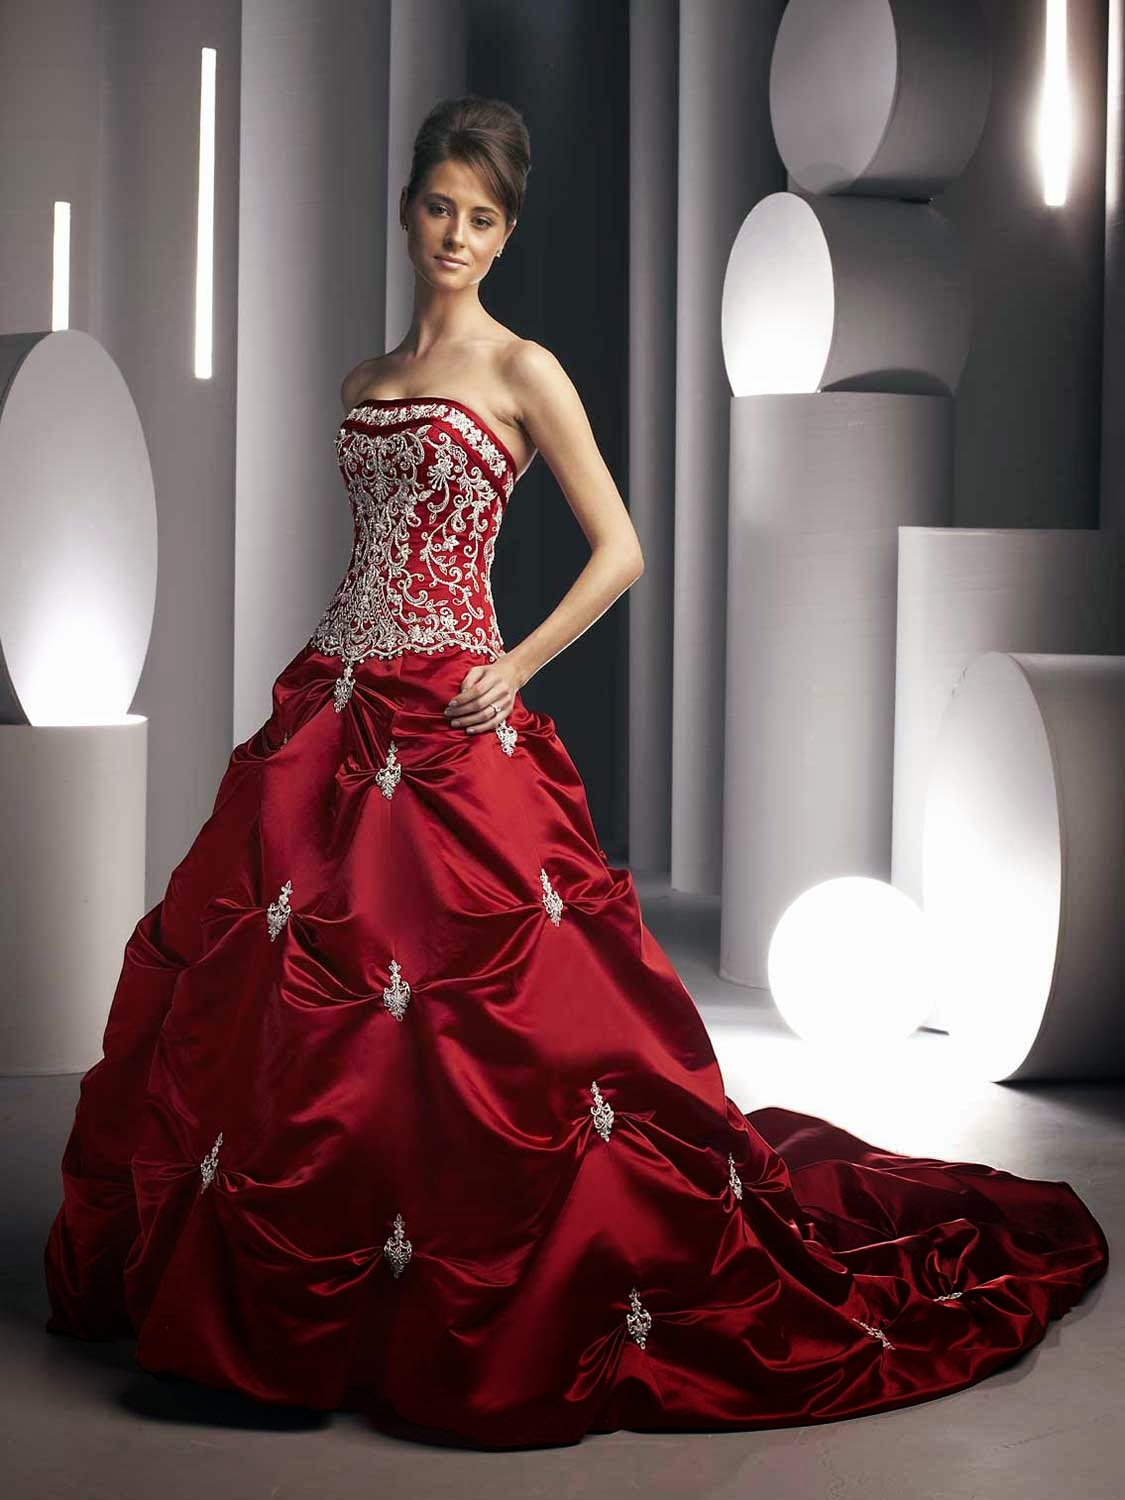 Red Wedding Dresses with Bling Photos HD Design Ideas